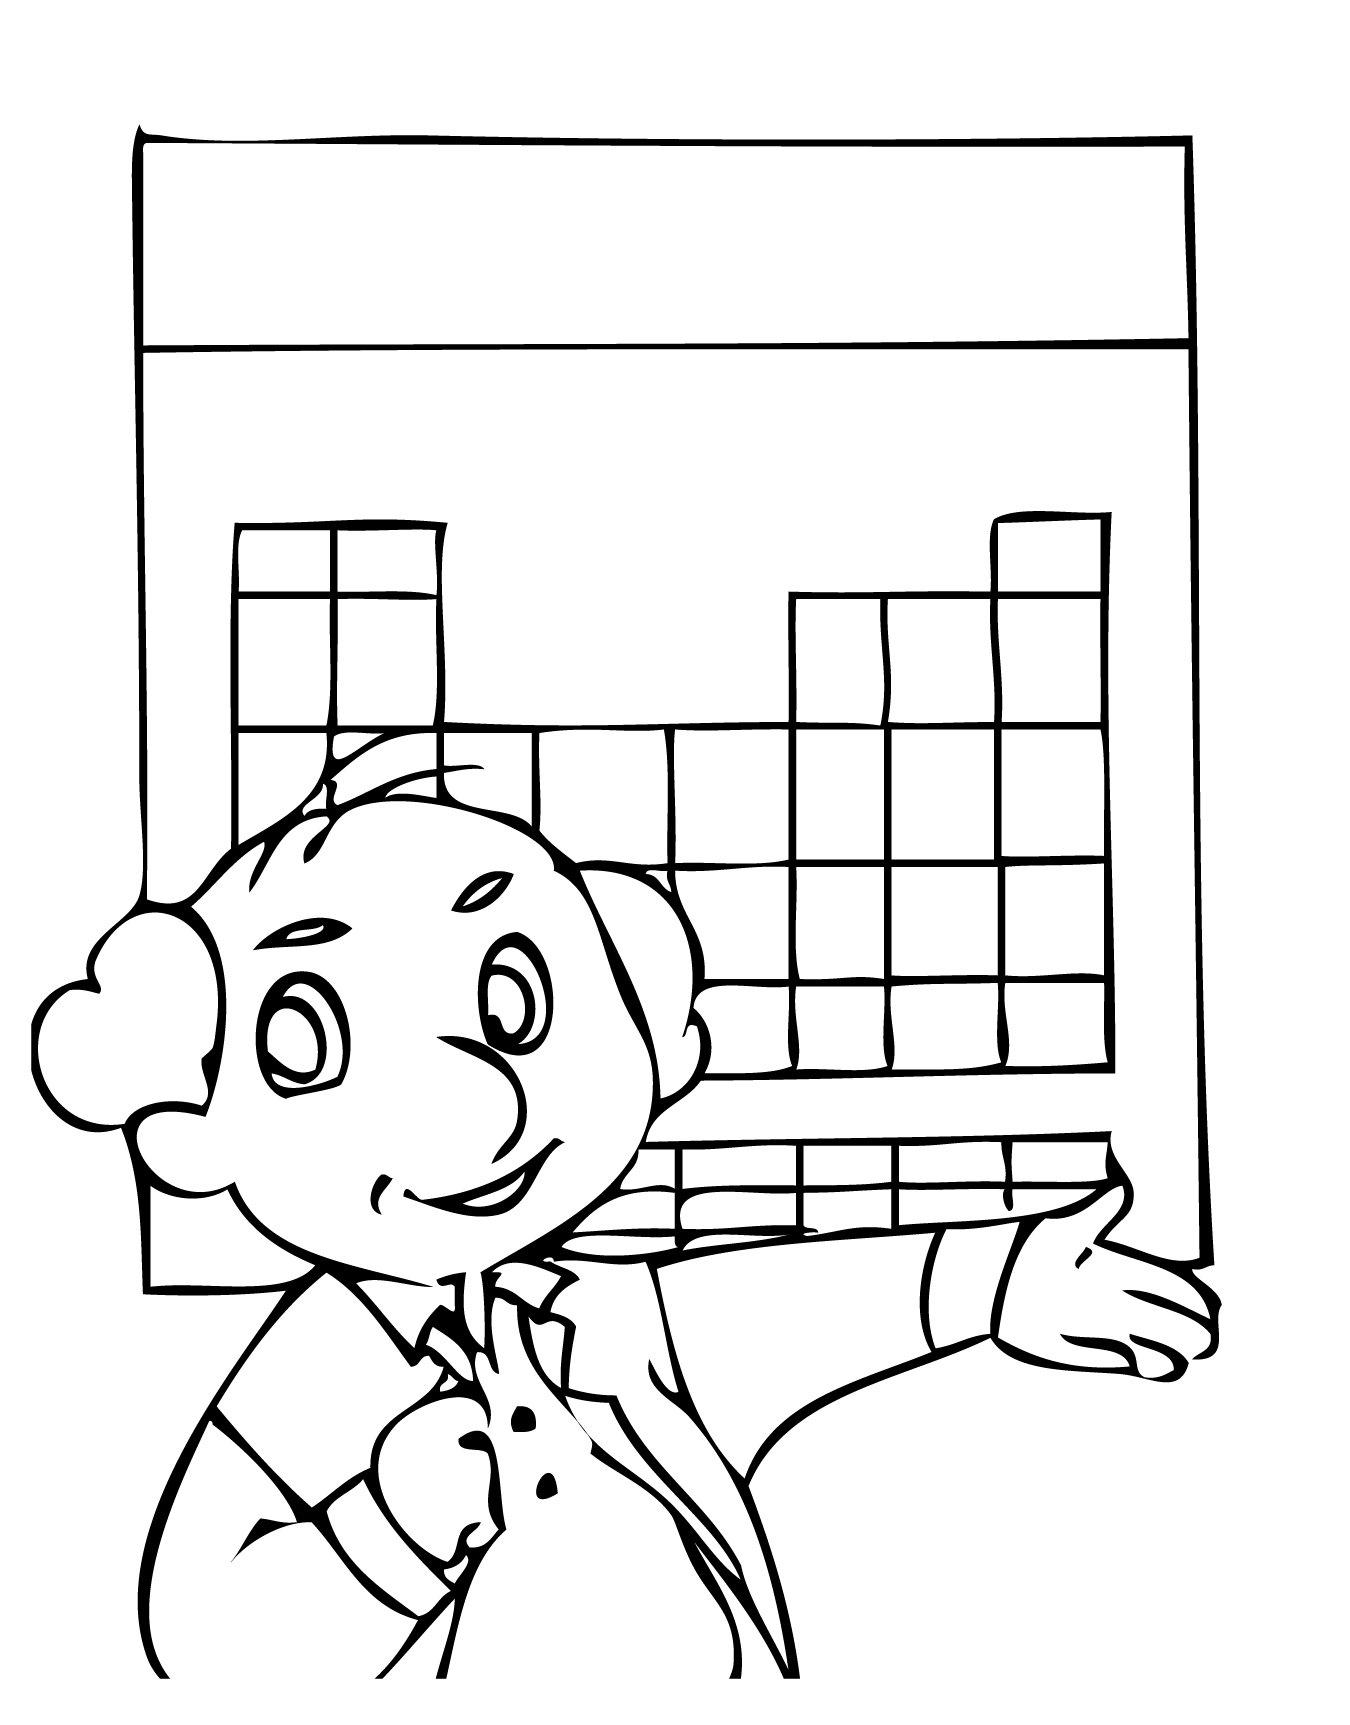 Periodic Table Coloring Page At Getcolorings